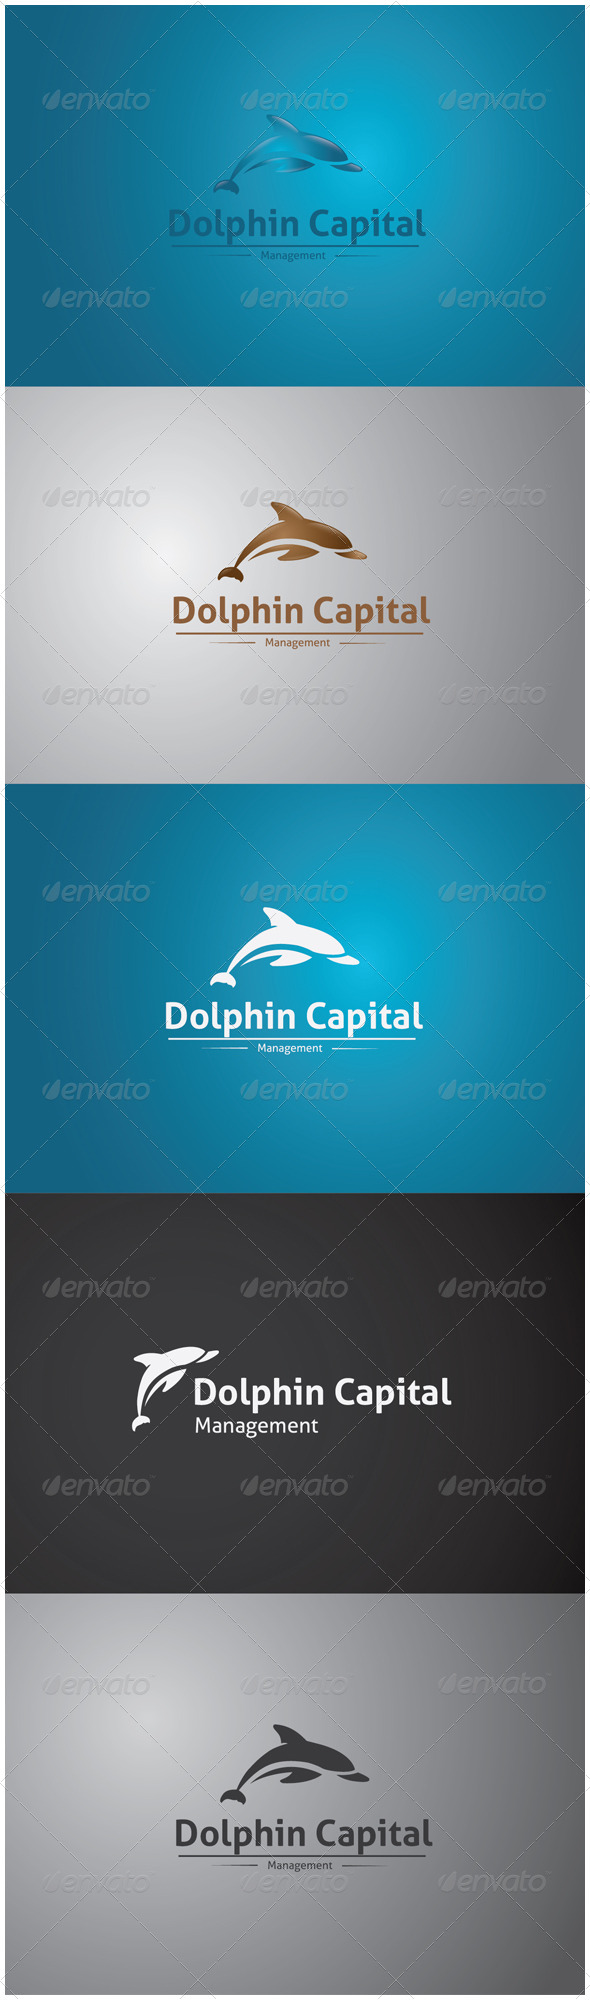 GraphicRiver Dolphin Capital Logo 5913119